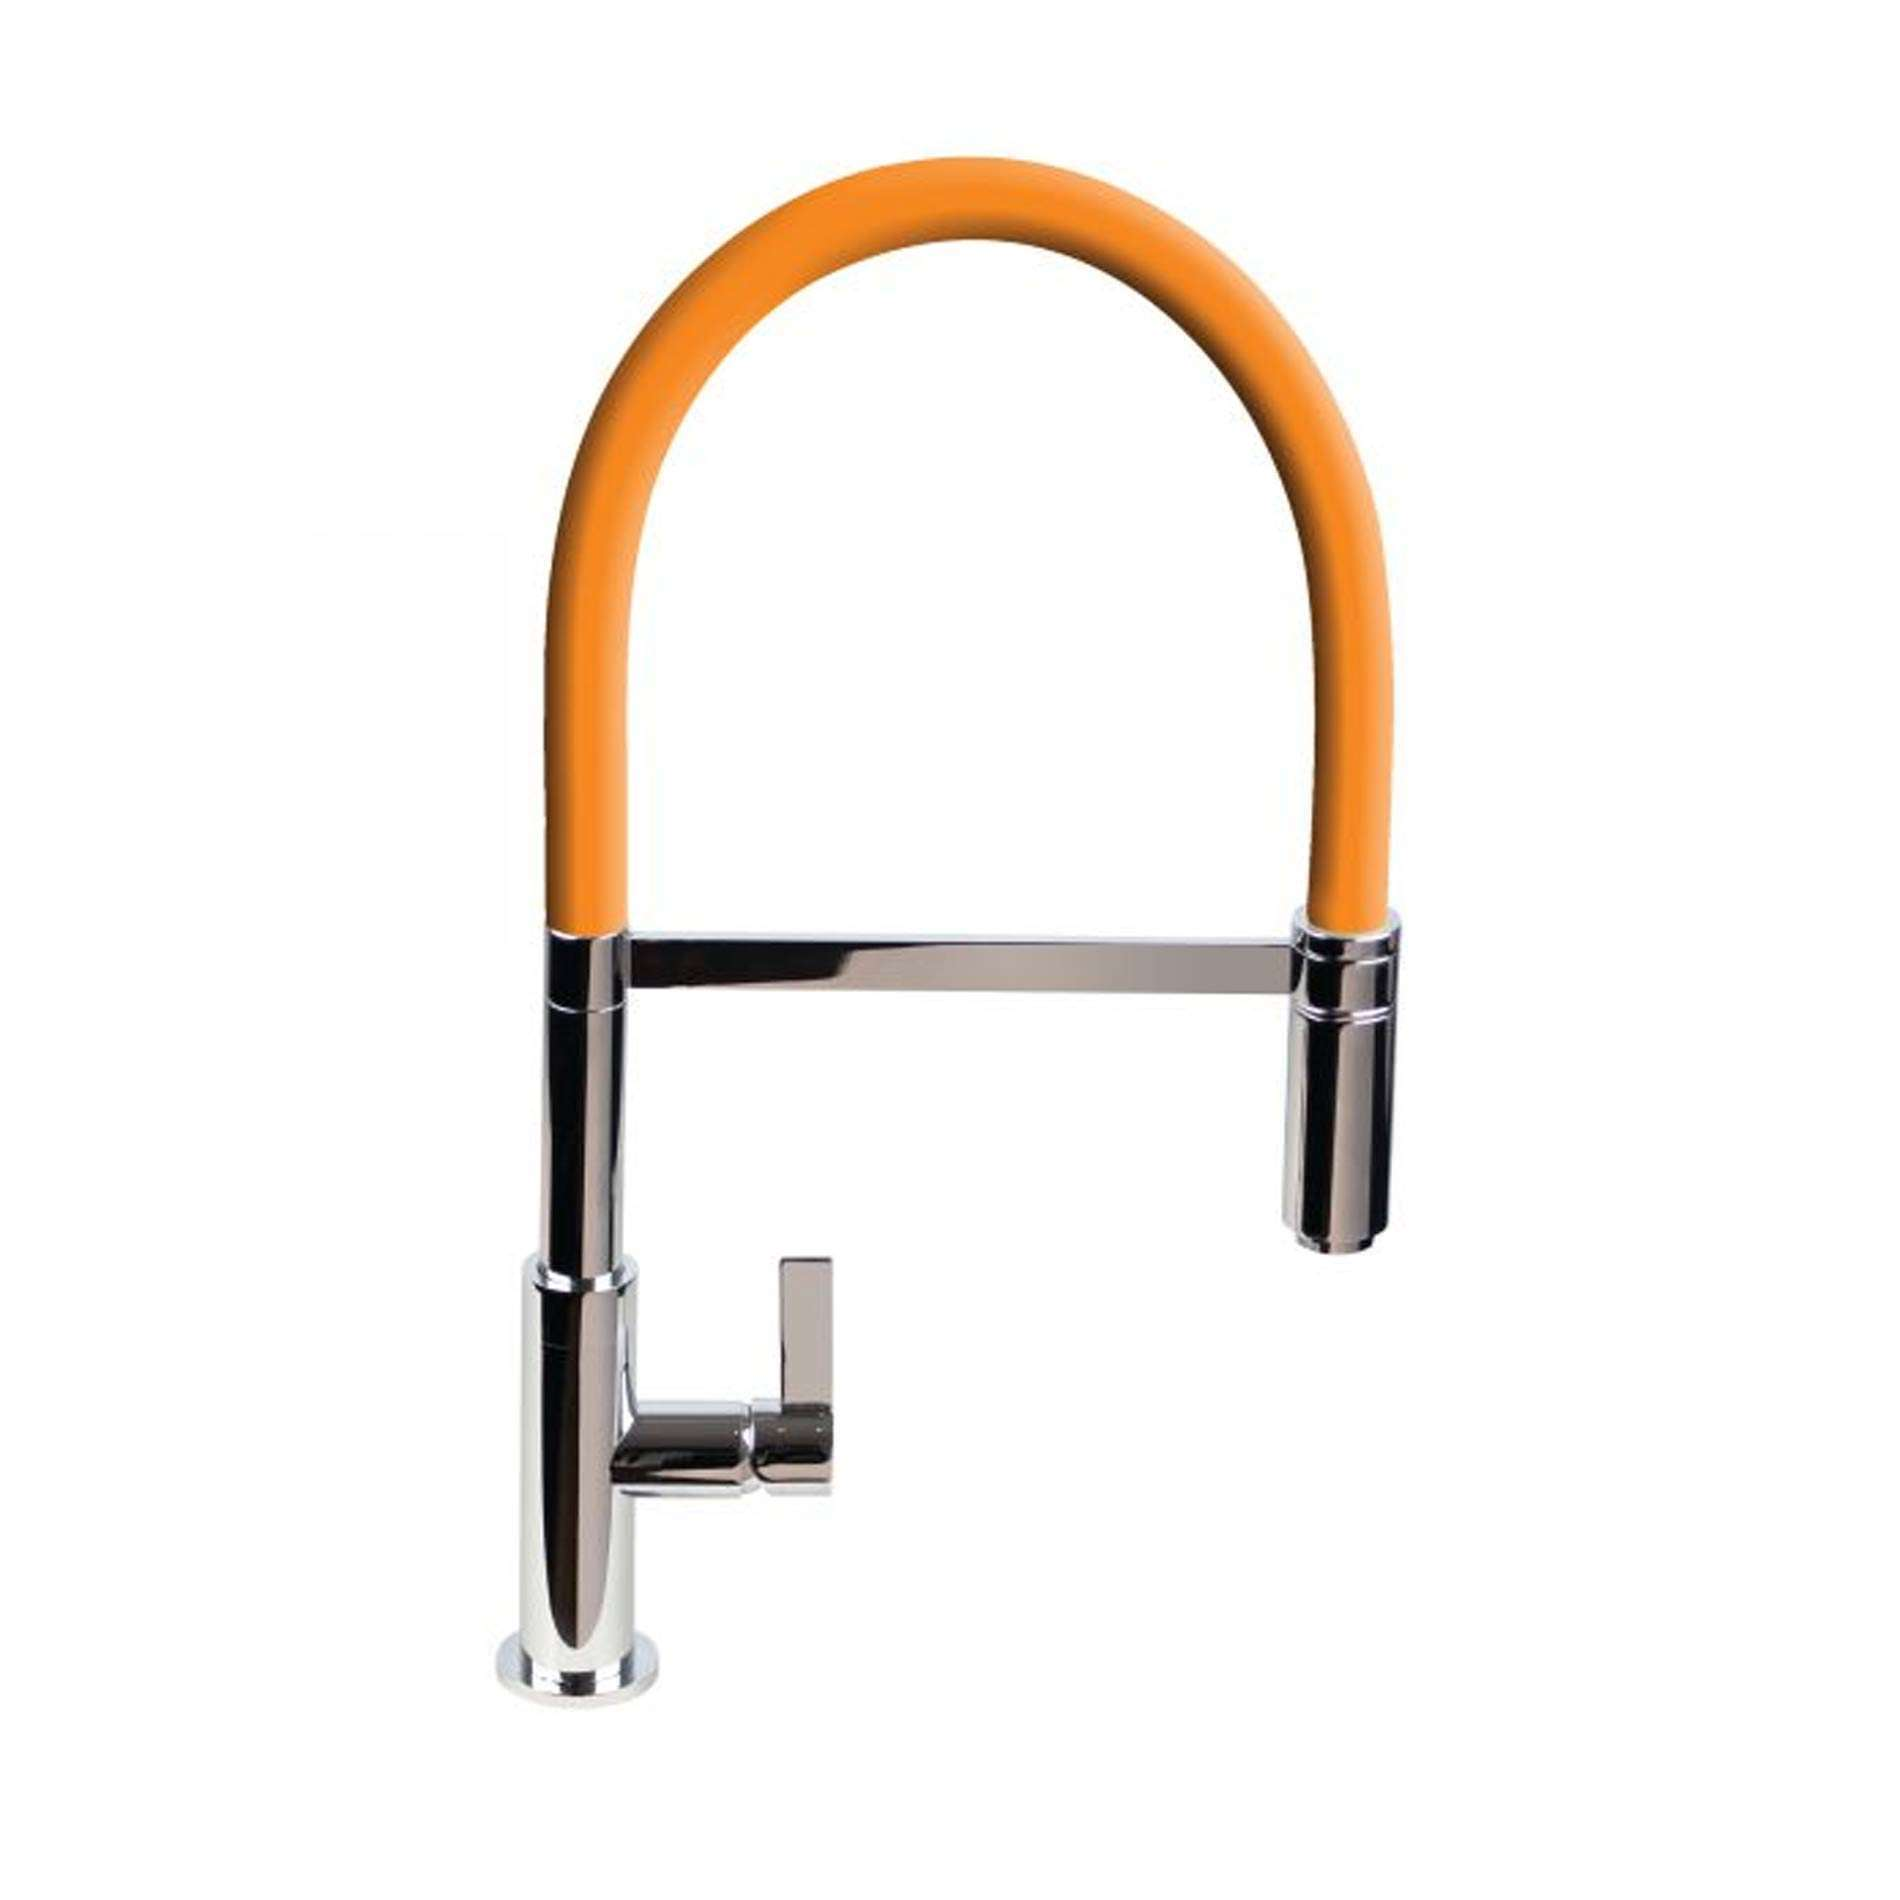 Picture of Spirale Brushed And Orange Flexible Spout Tap